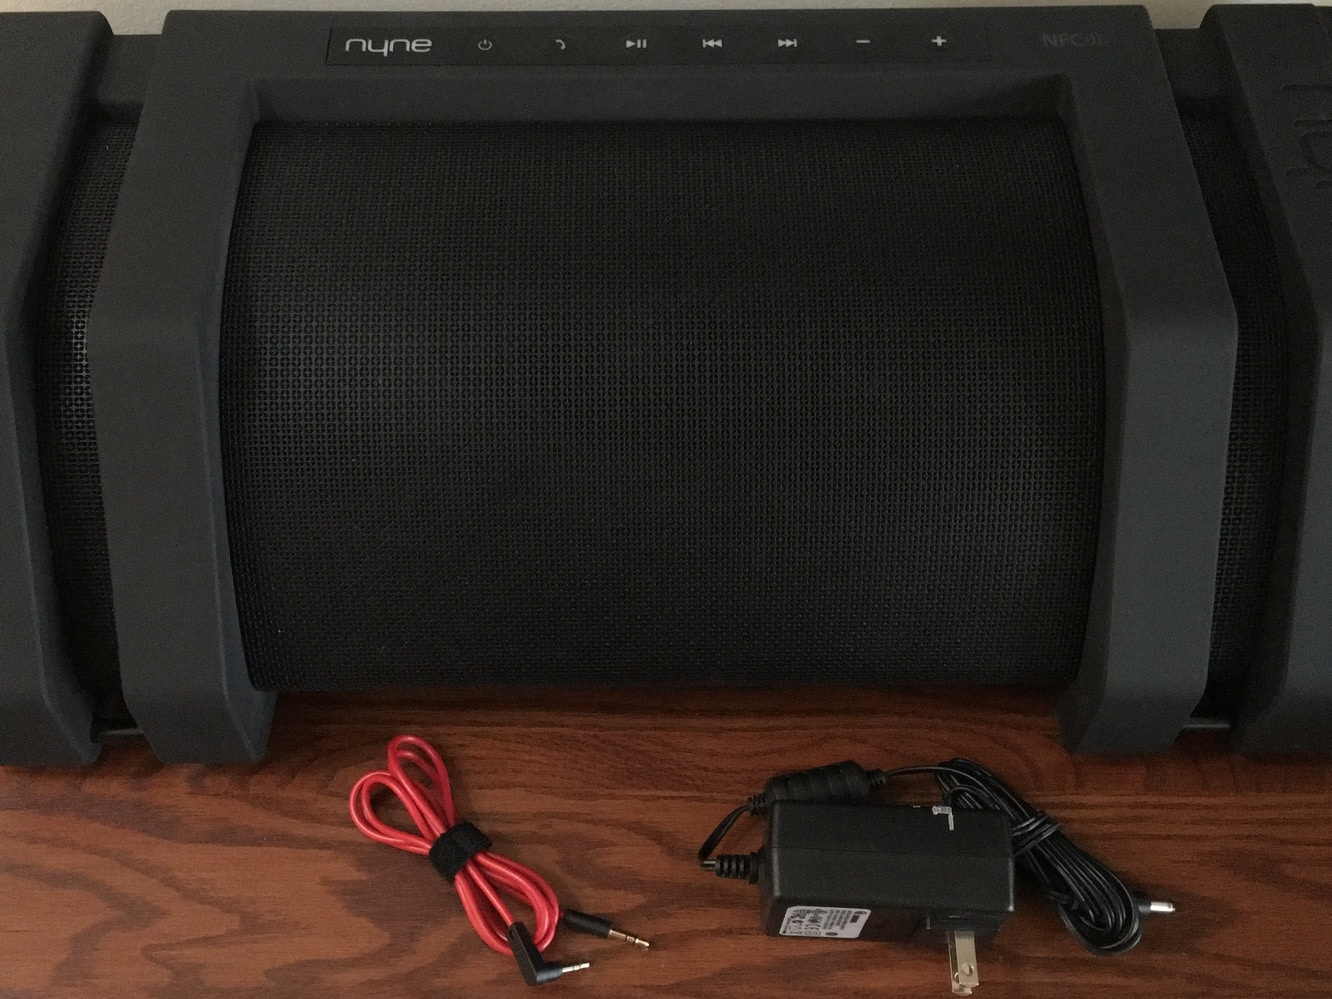 Review: Nyne Rock Wireless Bluetooth Speaker